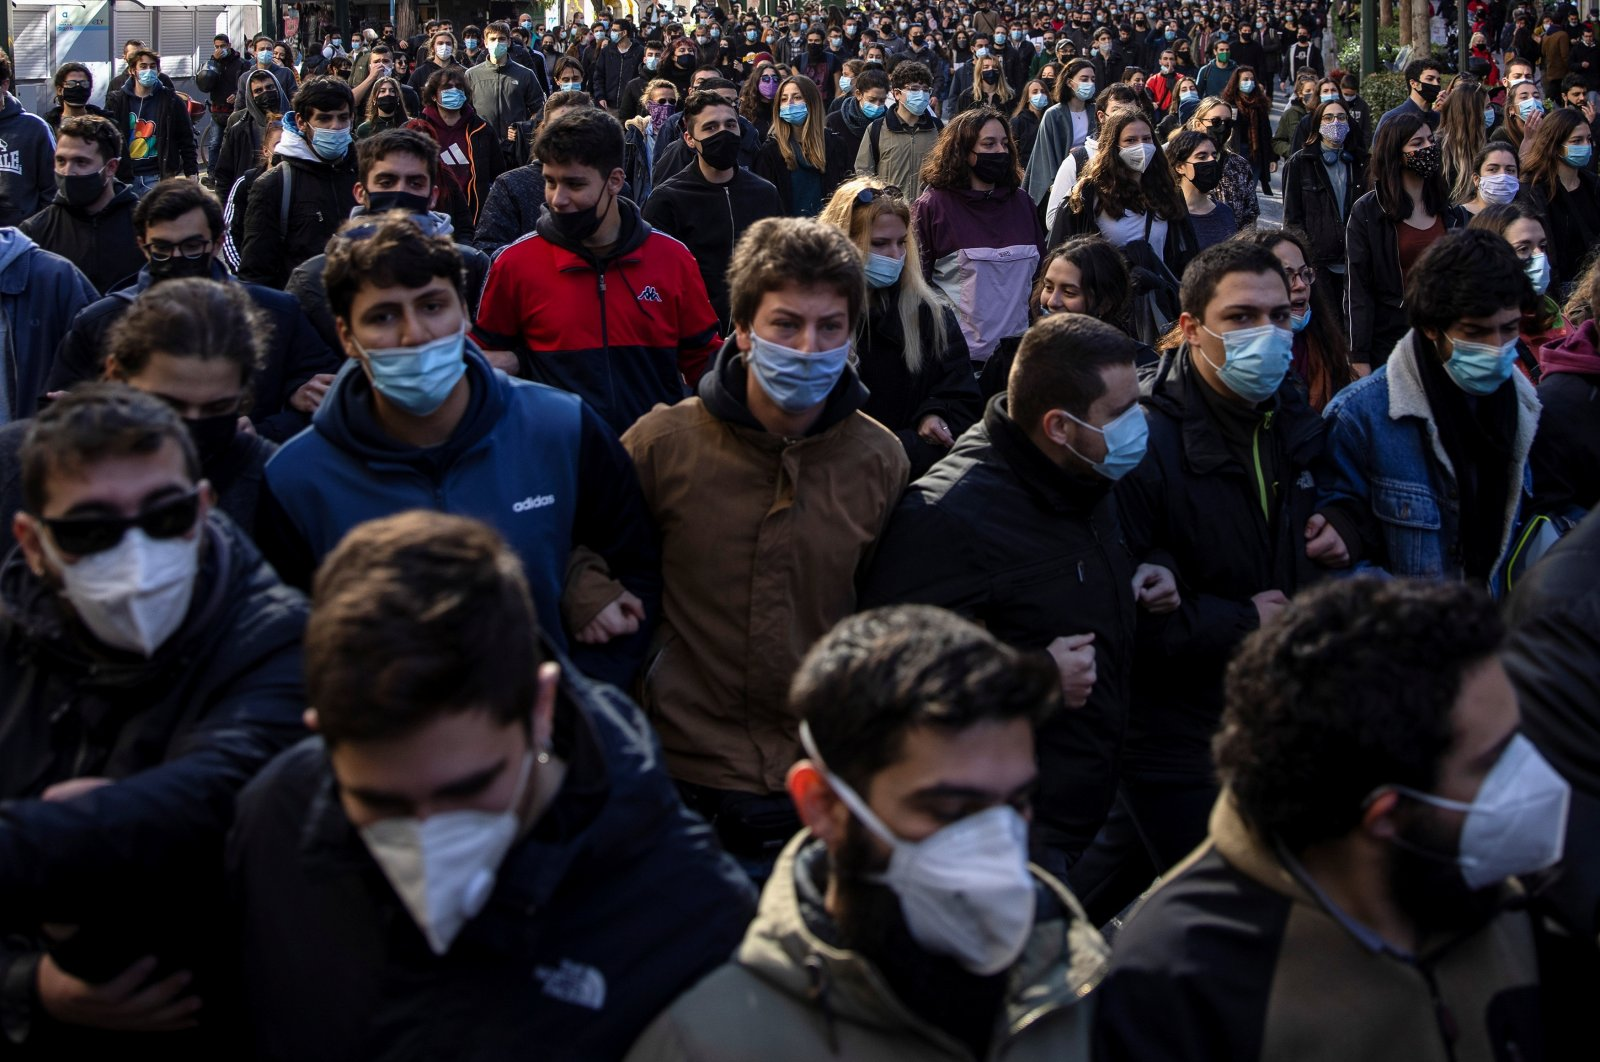 Greek university students, wearing protective face masks, shout slogans during a demonstration against government plans to set up university police units, amid the coronavirus pandemic, in Athens, Greece, Jan. 21, 2021. (Reuters Photo)